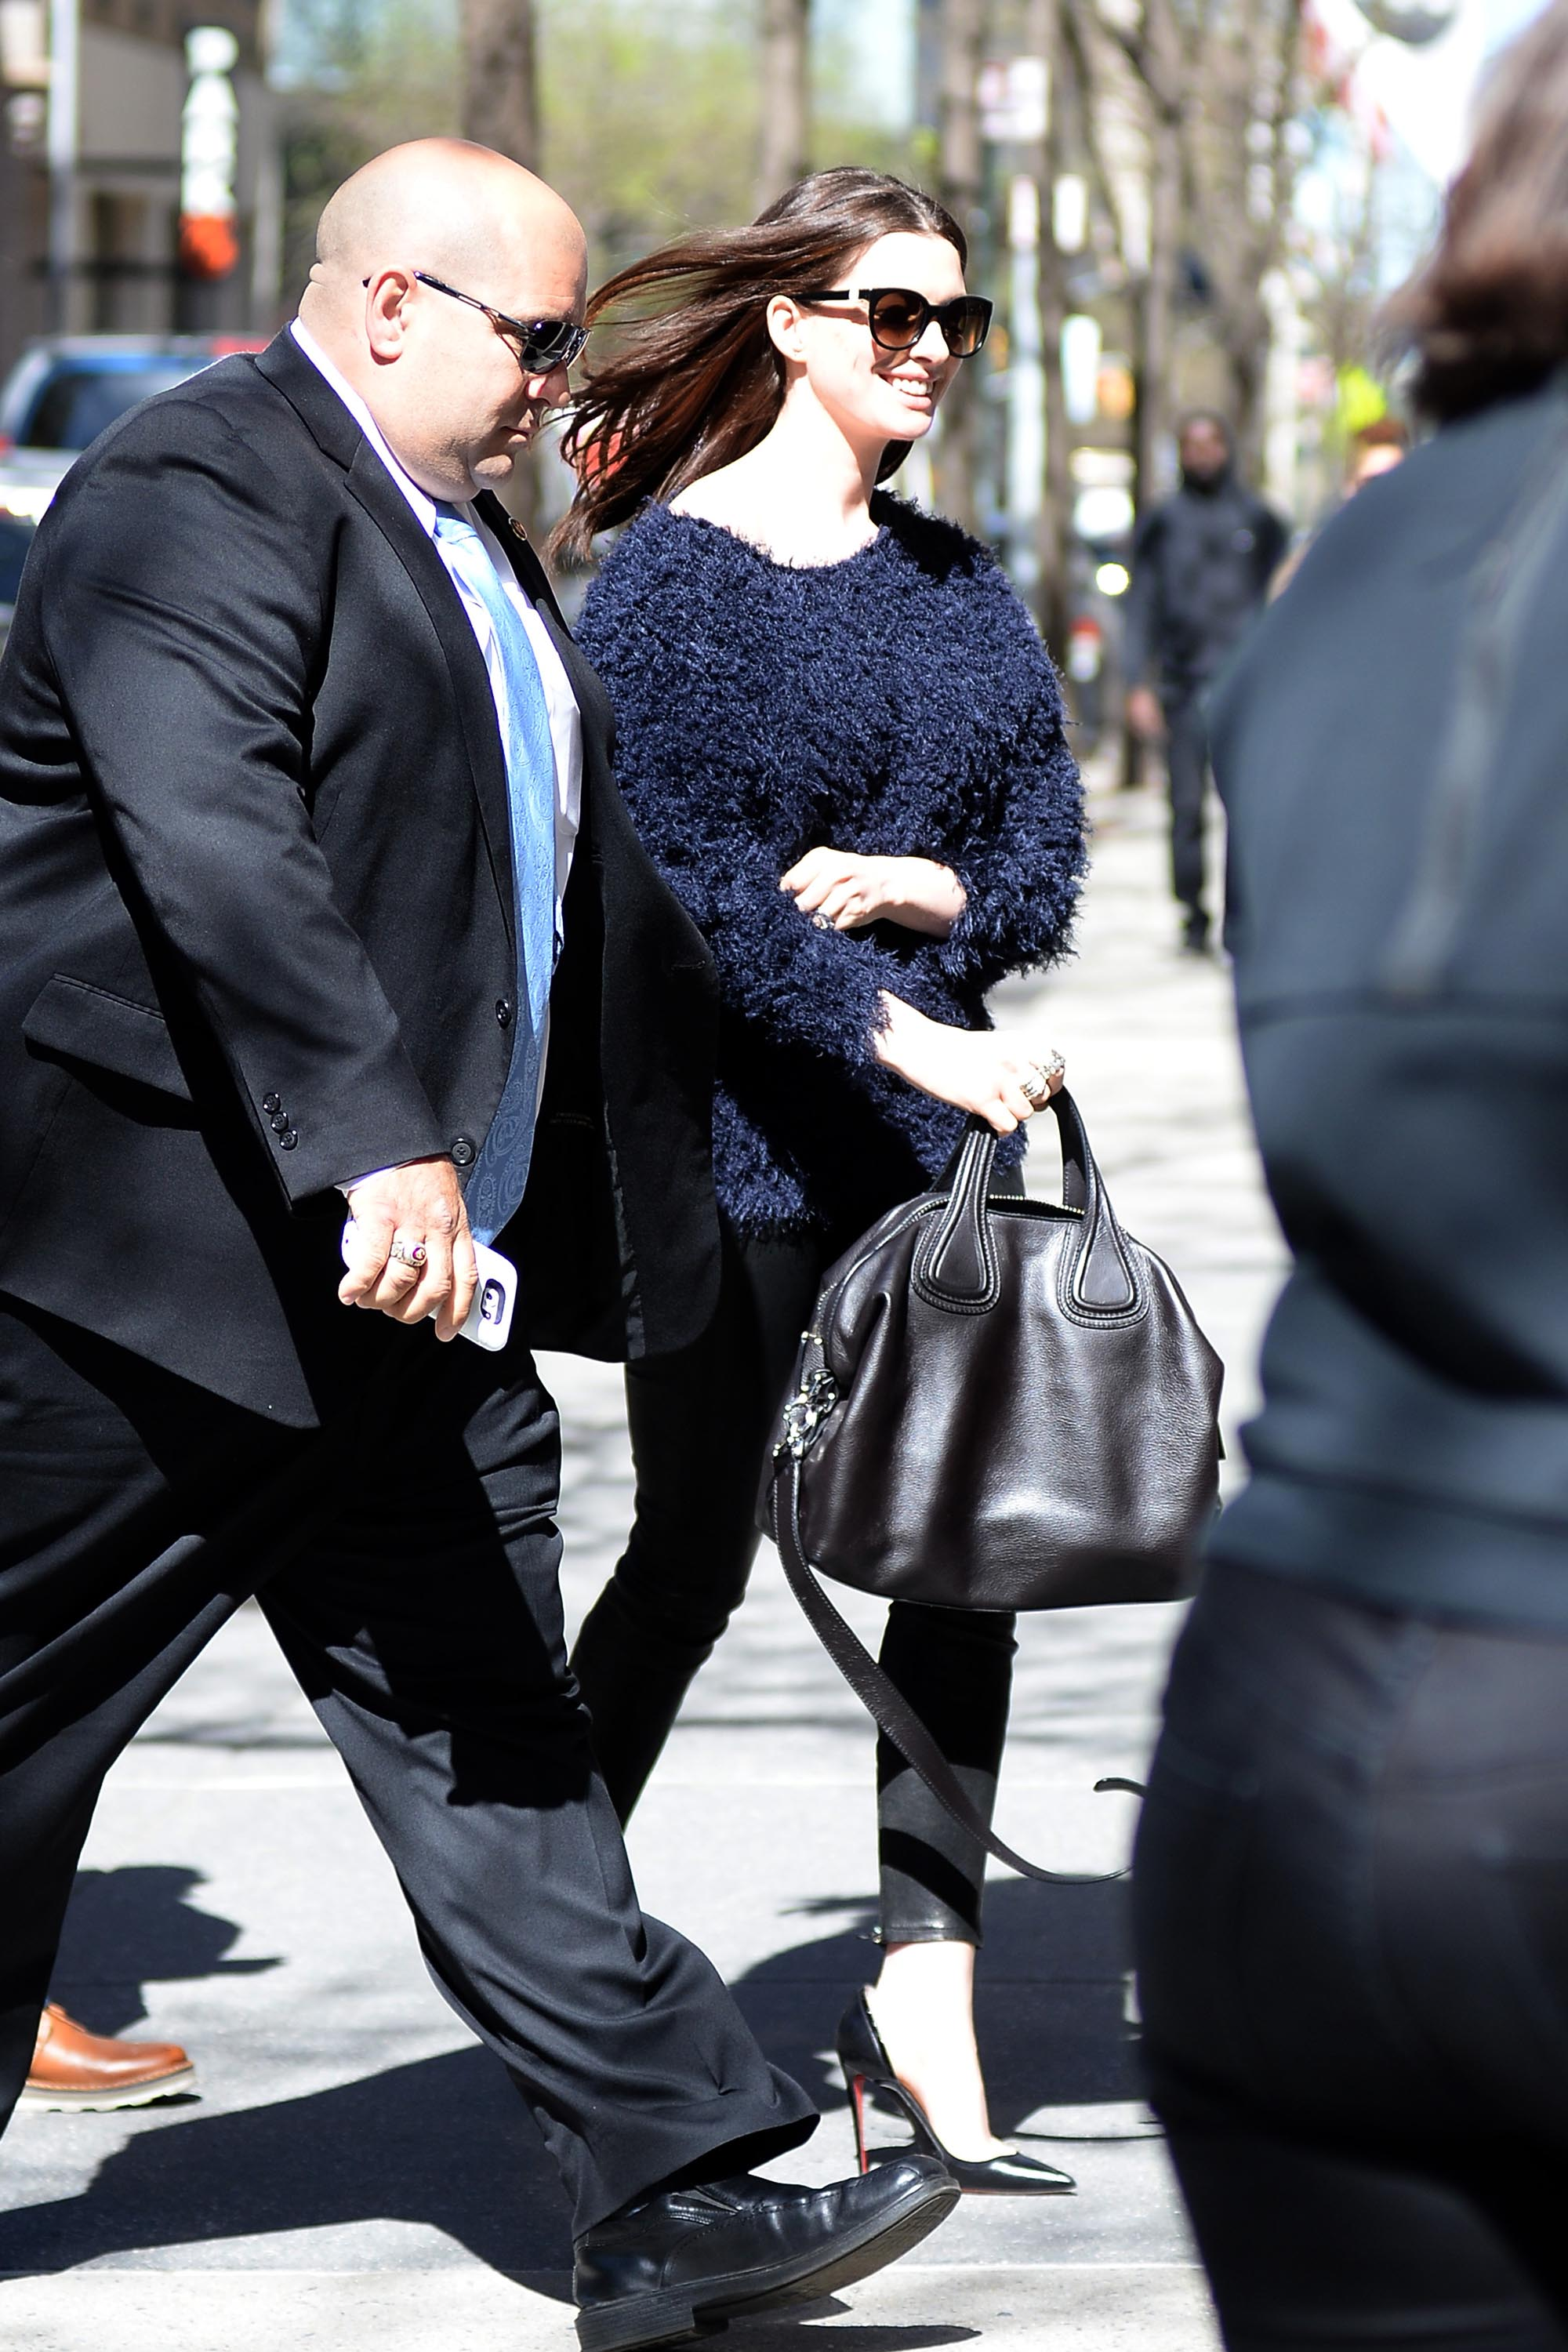 Anne Hathaway leaving a meeting in NYC